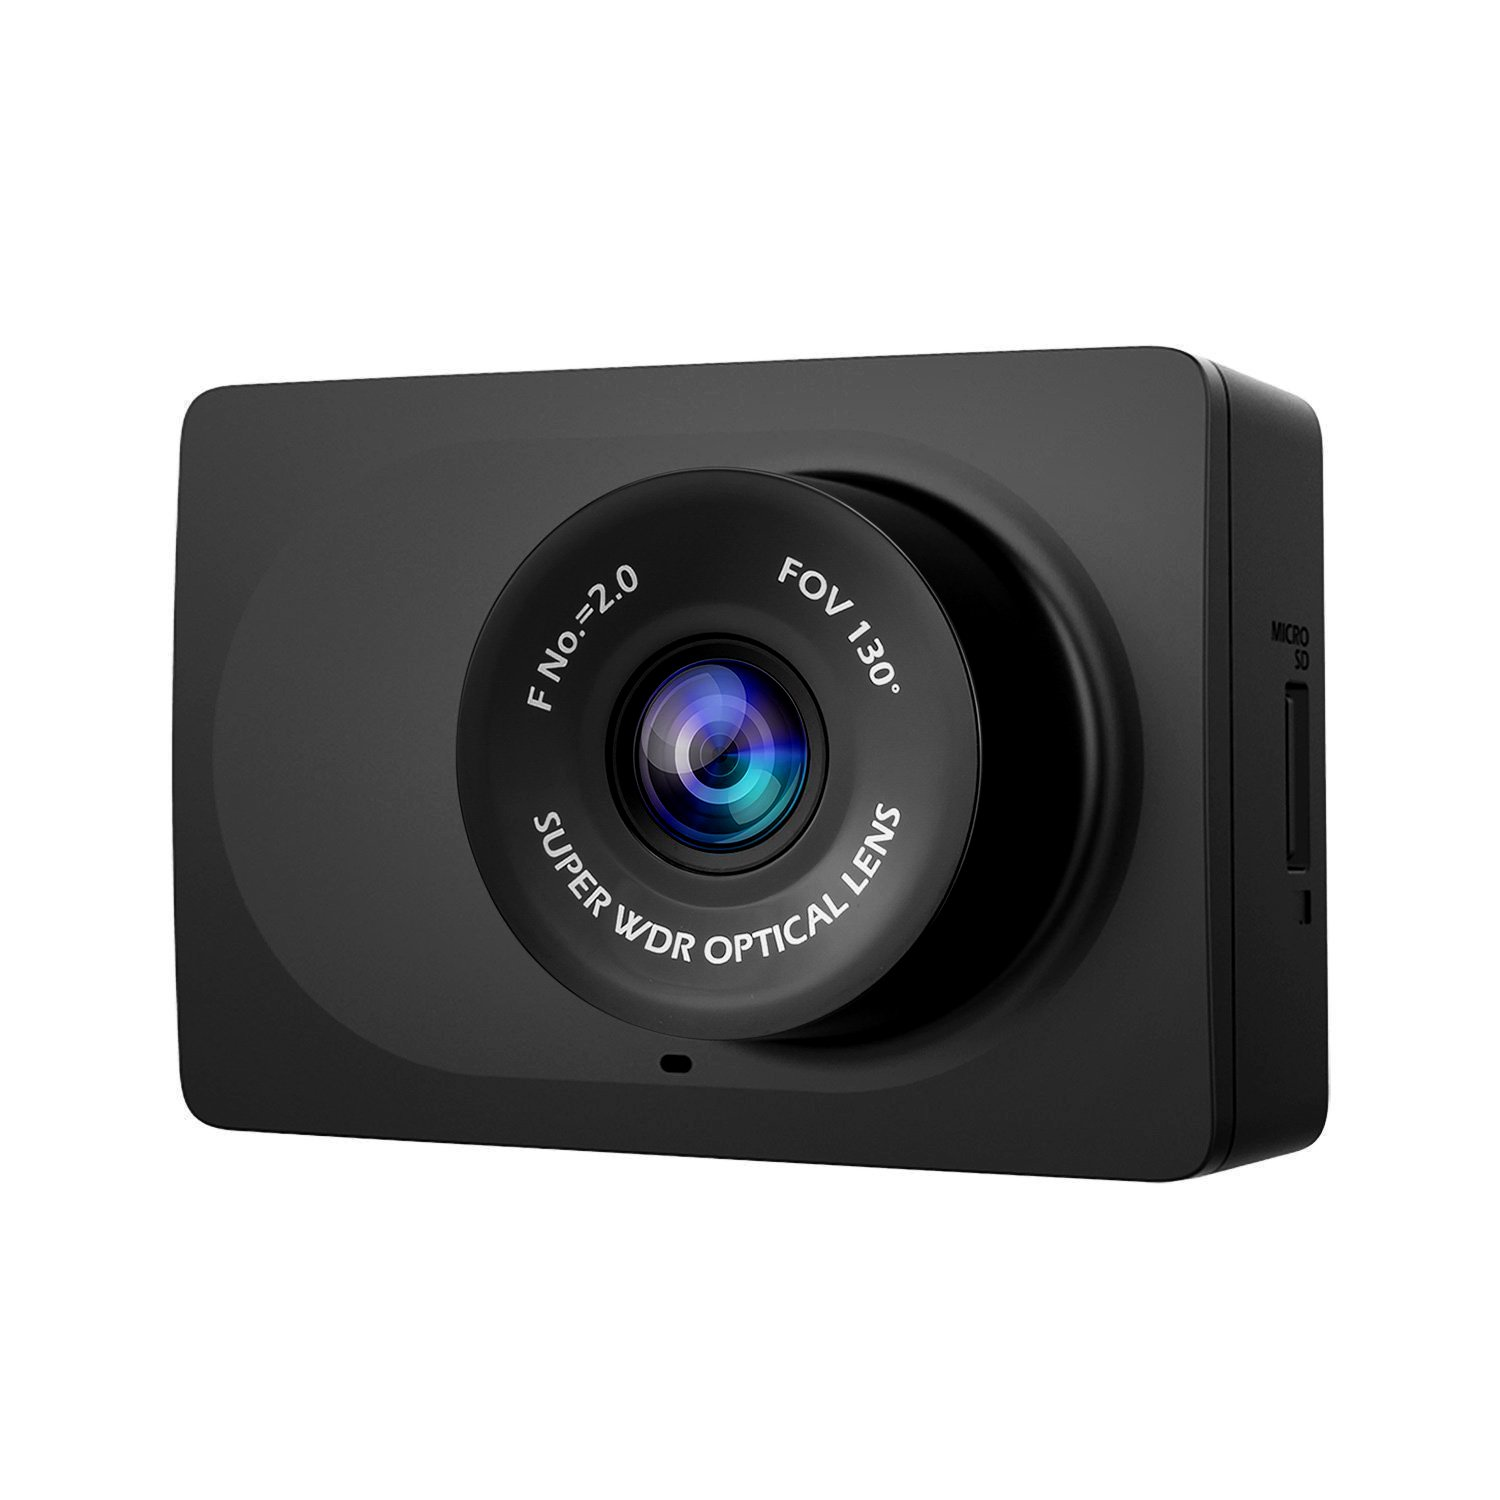 YI Compact Dash Cam, 1080p Full HD Car Dashboard Camera with 2.7 LCD Screen, 130° WDR Lens, Mobile APP, G-Sensor, Night Vision, Loop Recording - Black